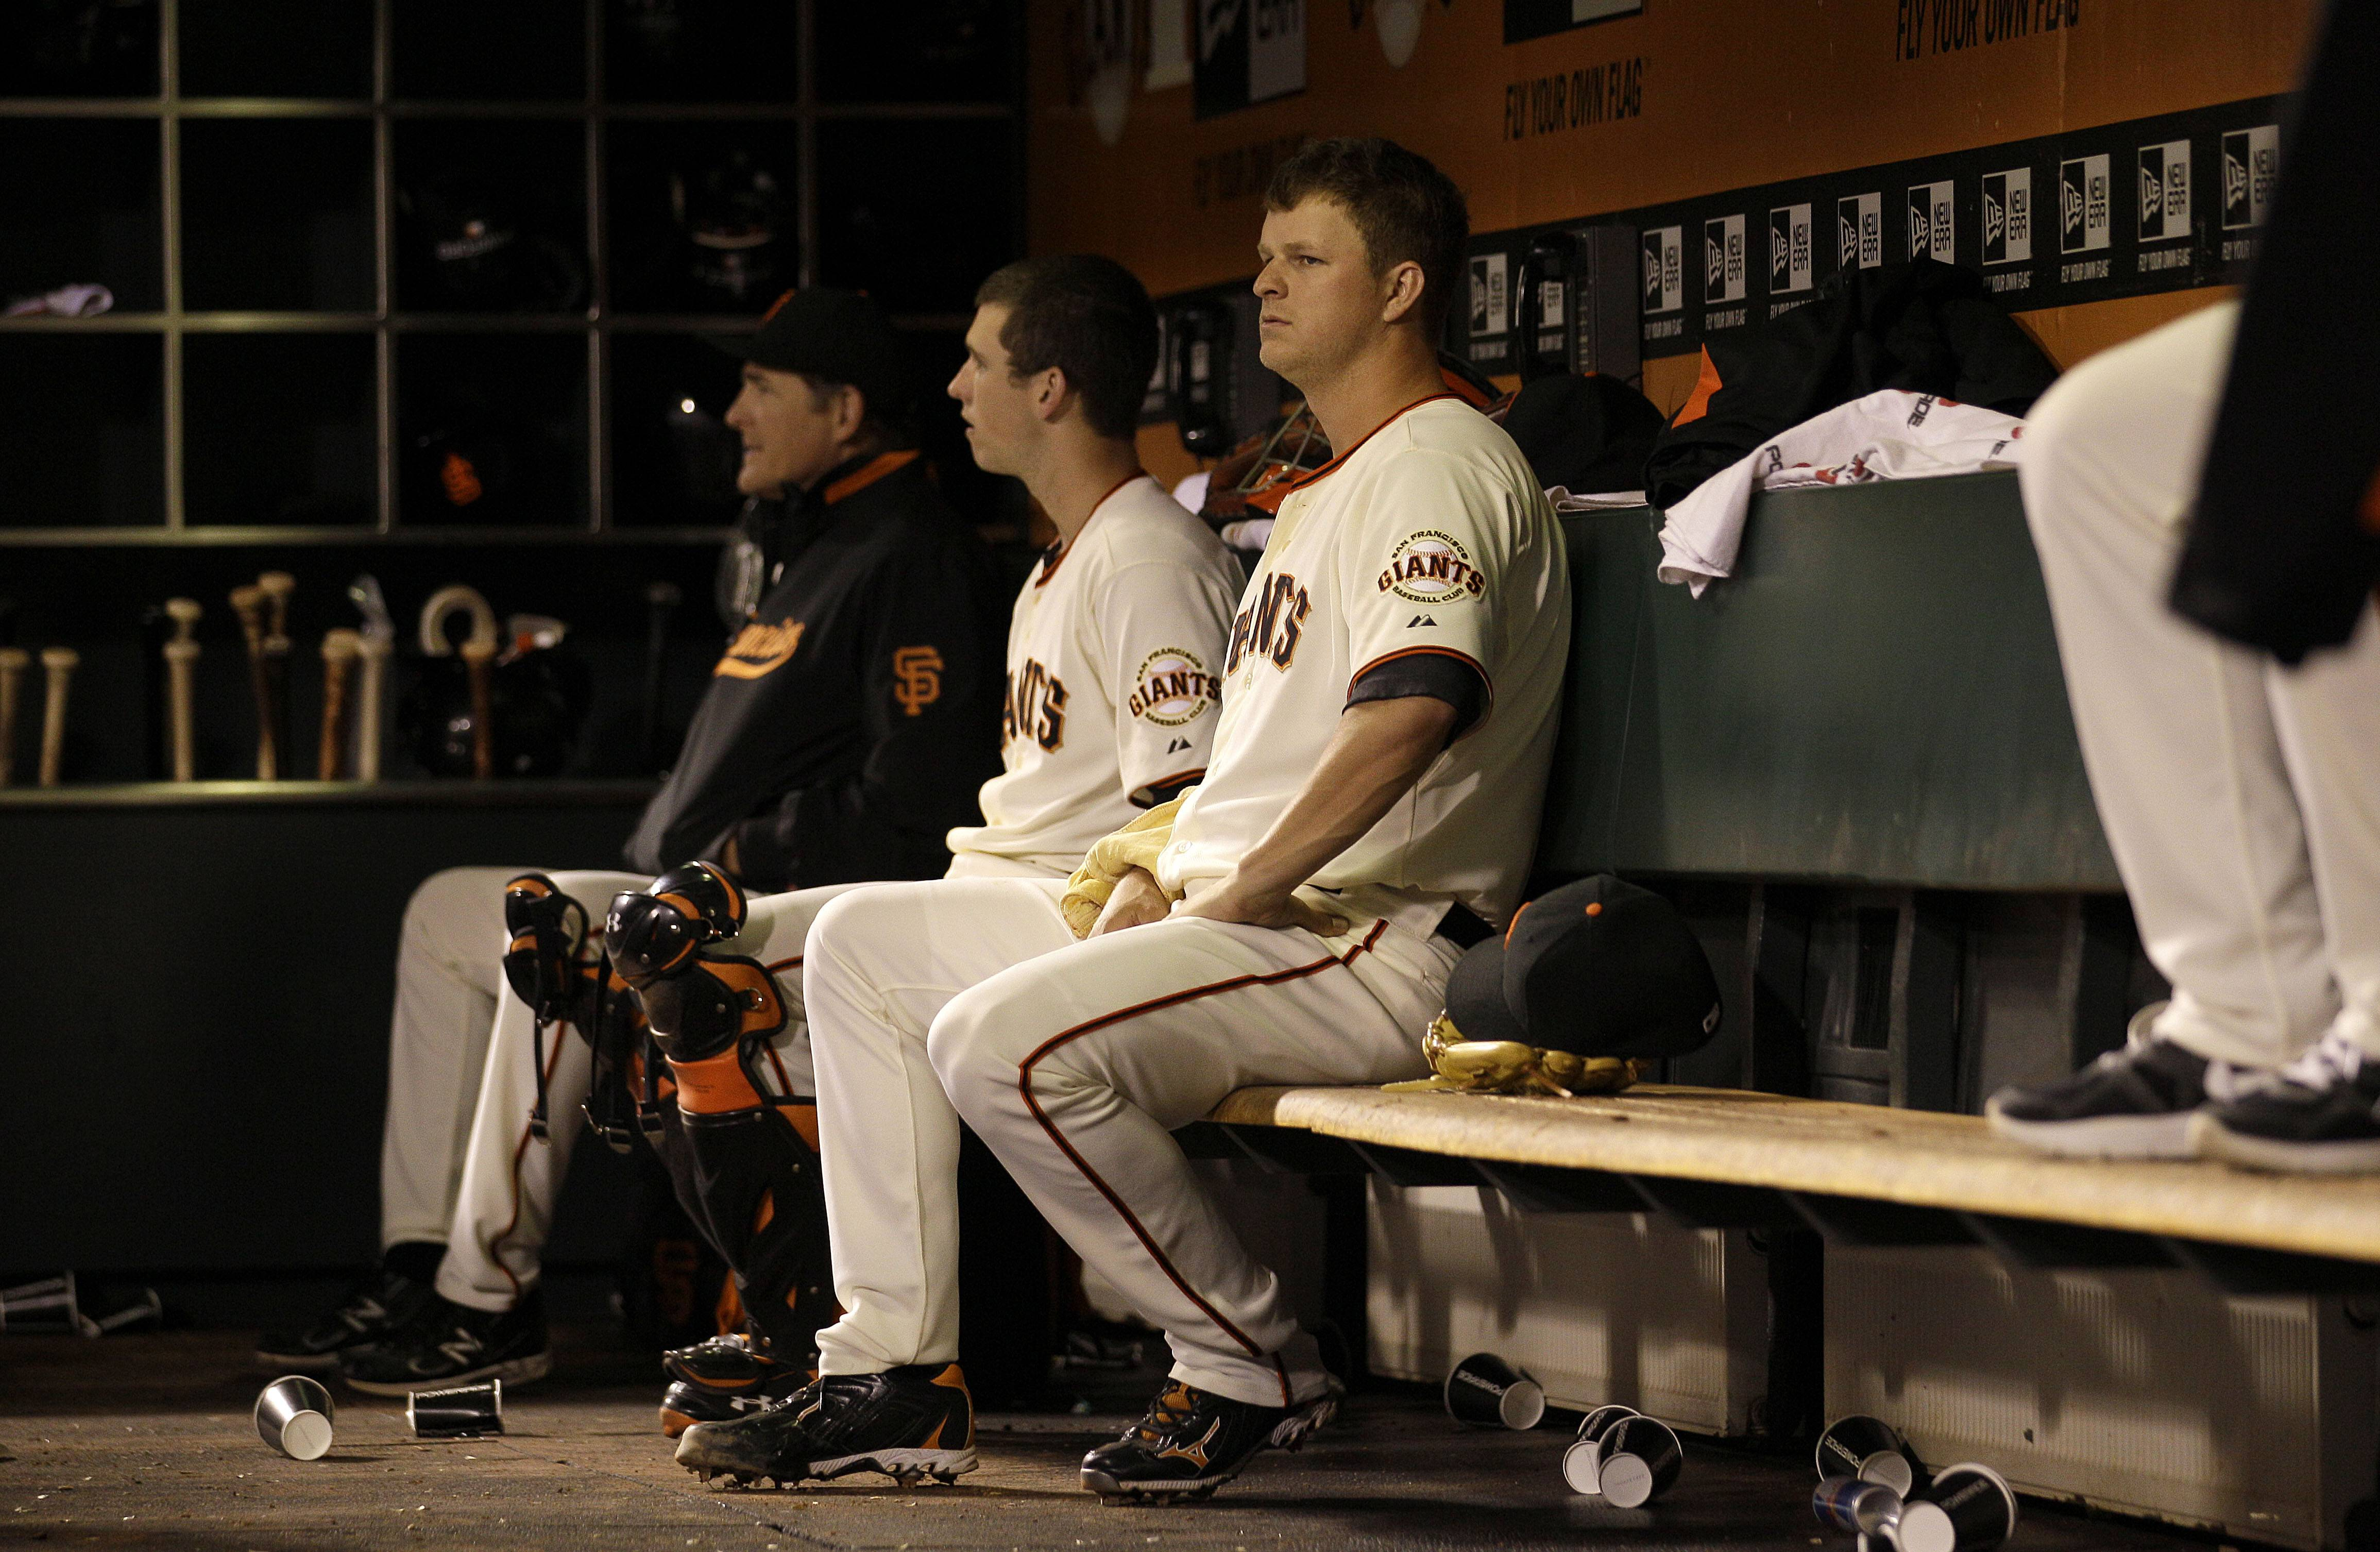 San Francisco Giants pitcher Matt Cain sits in the dugout Wednesday during the sixth inning.